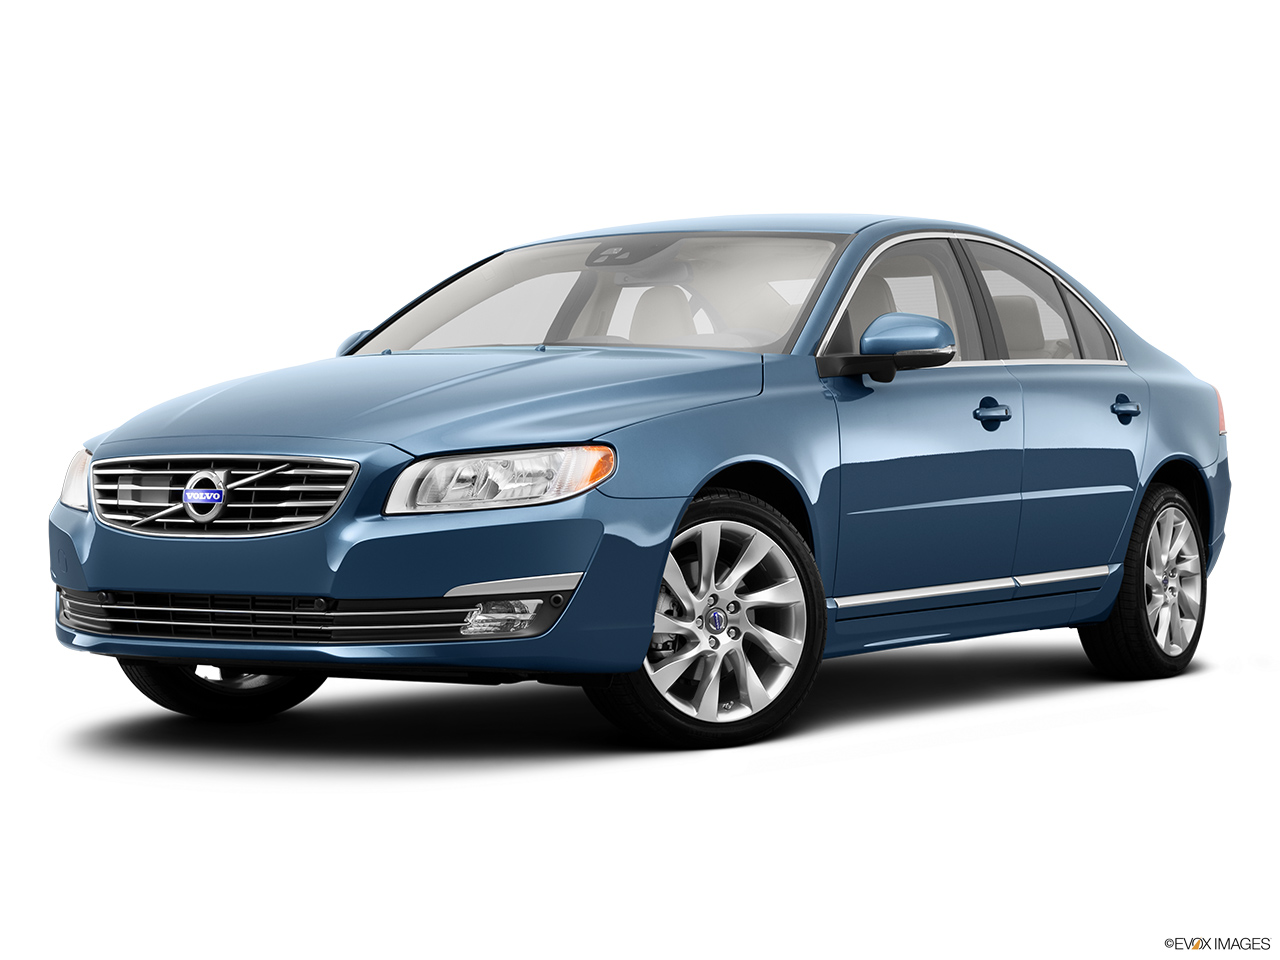 2014 Volvo S80 T6 AWD Platinum Front angle medium view.